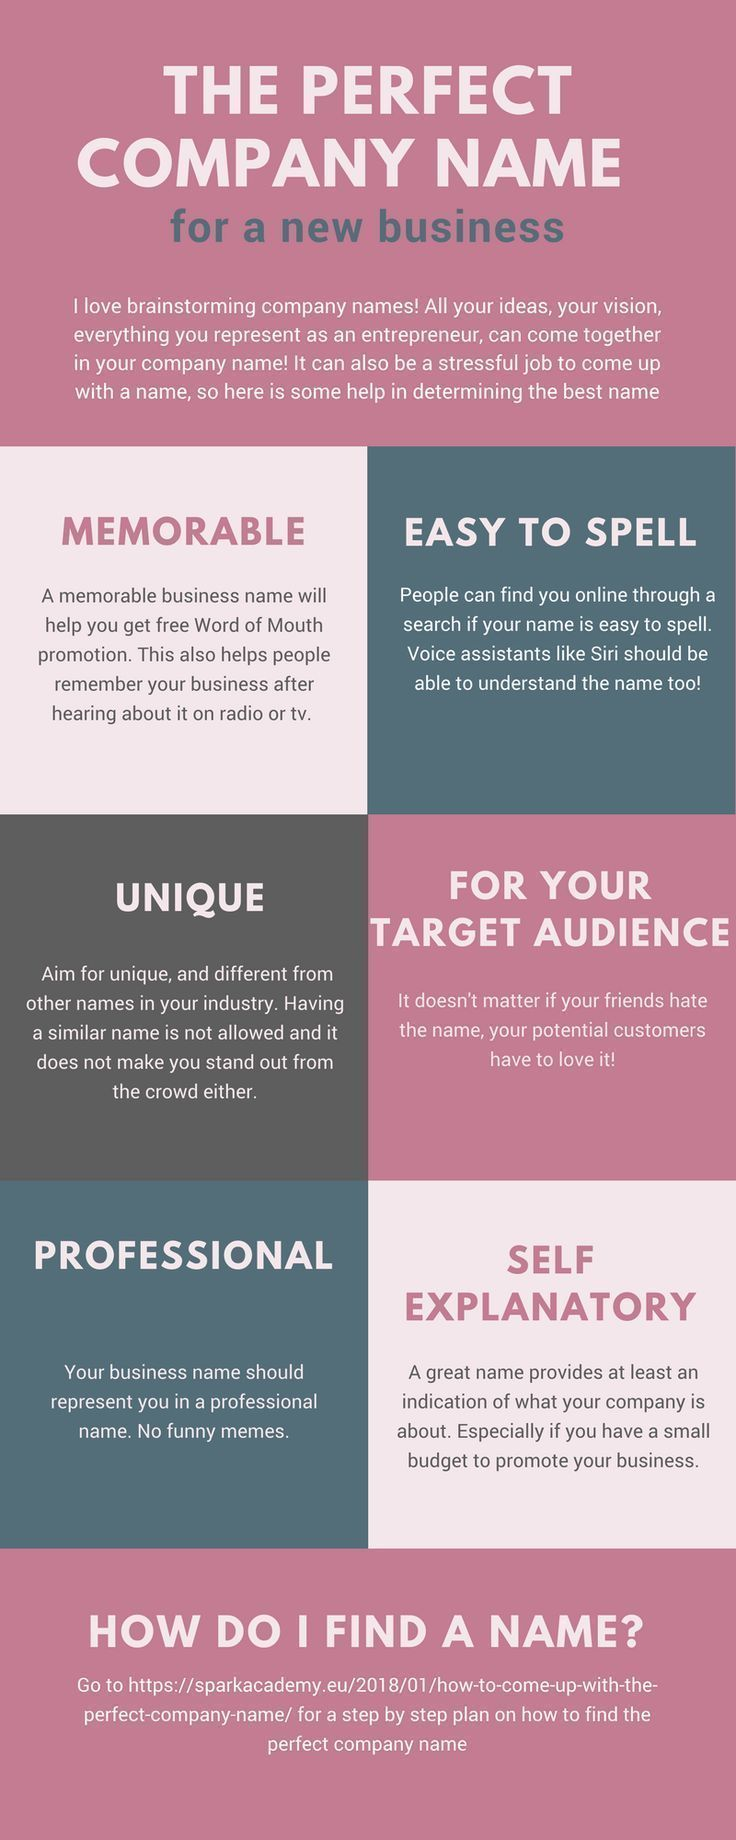 How to come up with a business name - Paulien Pierik